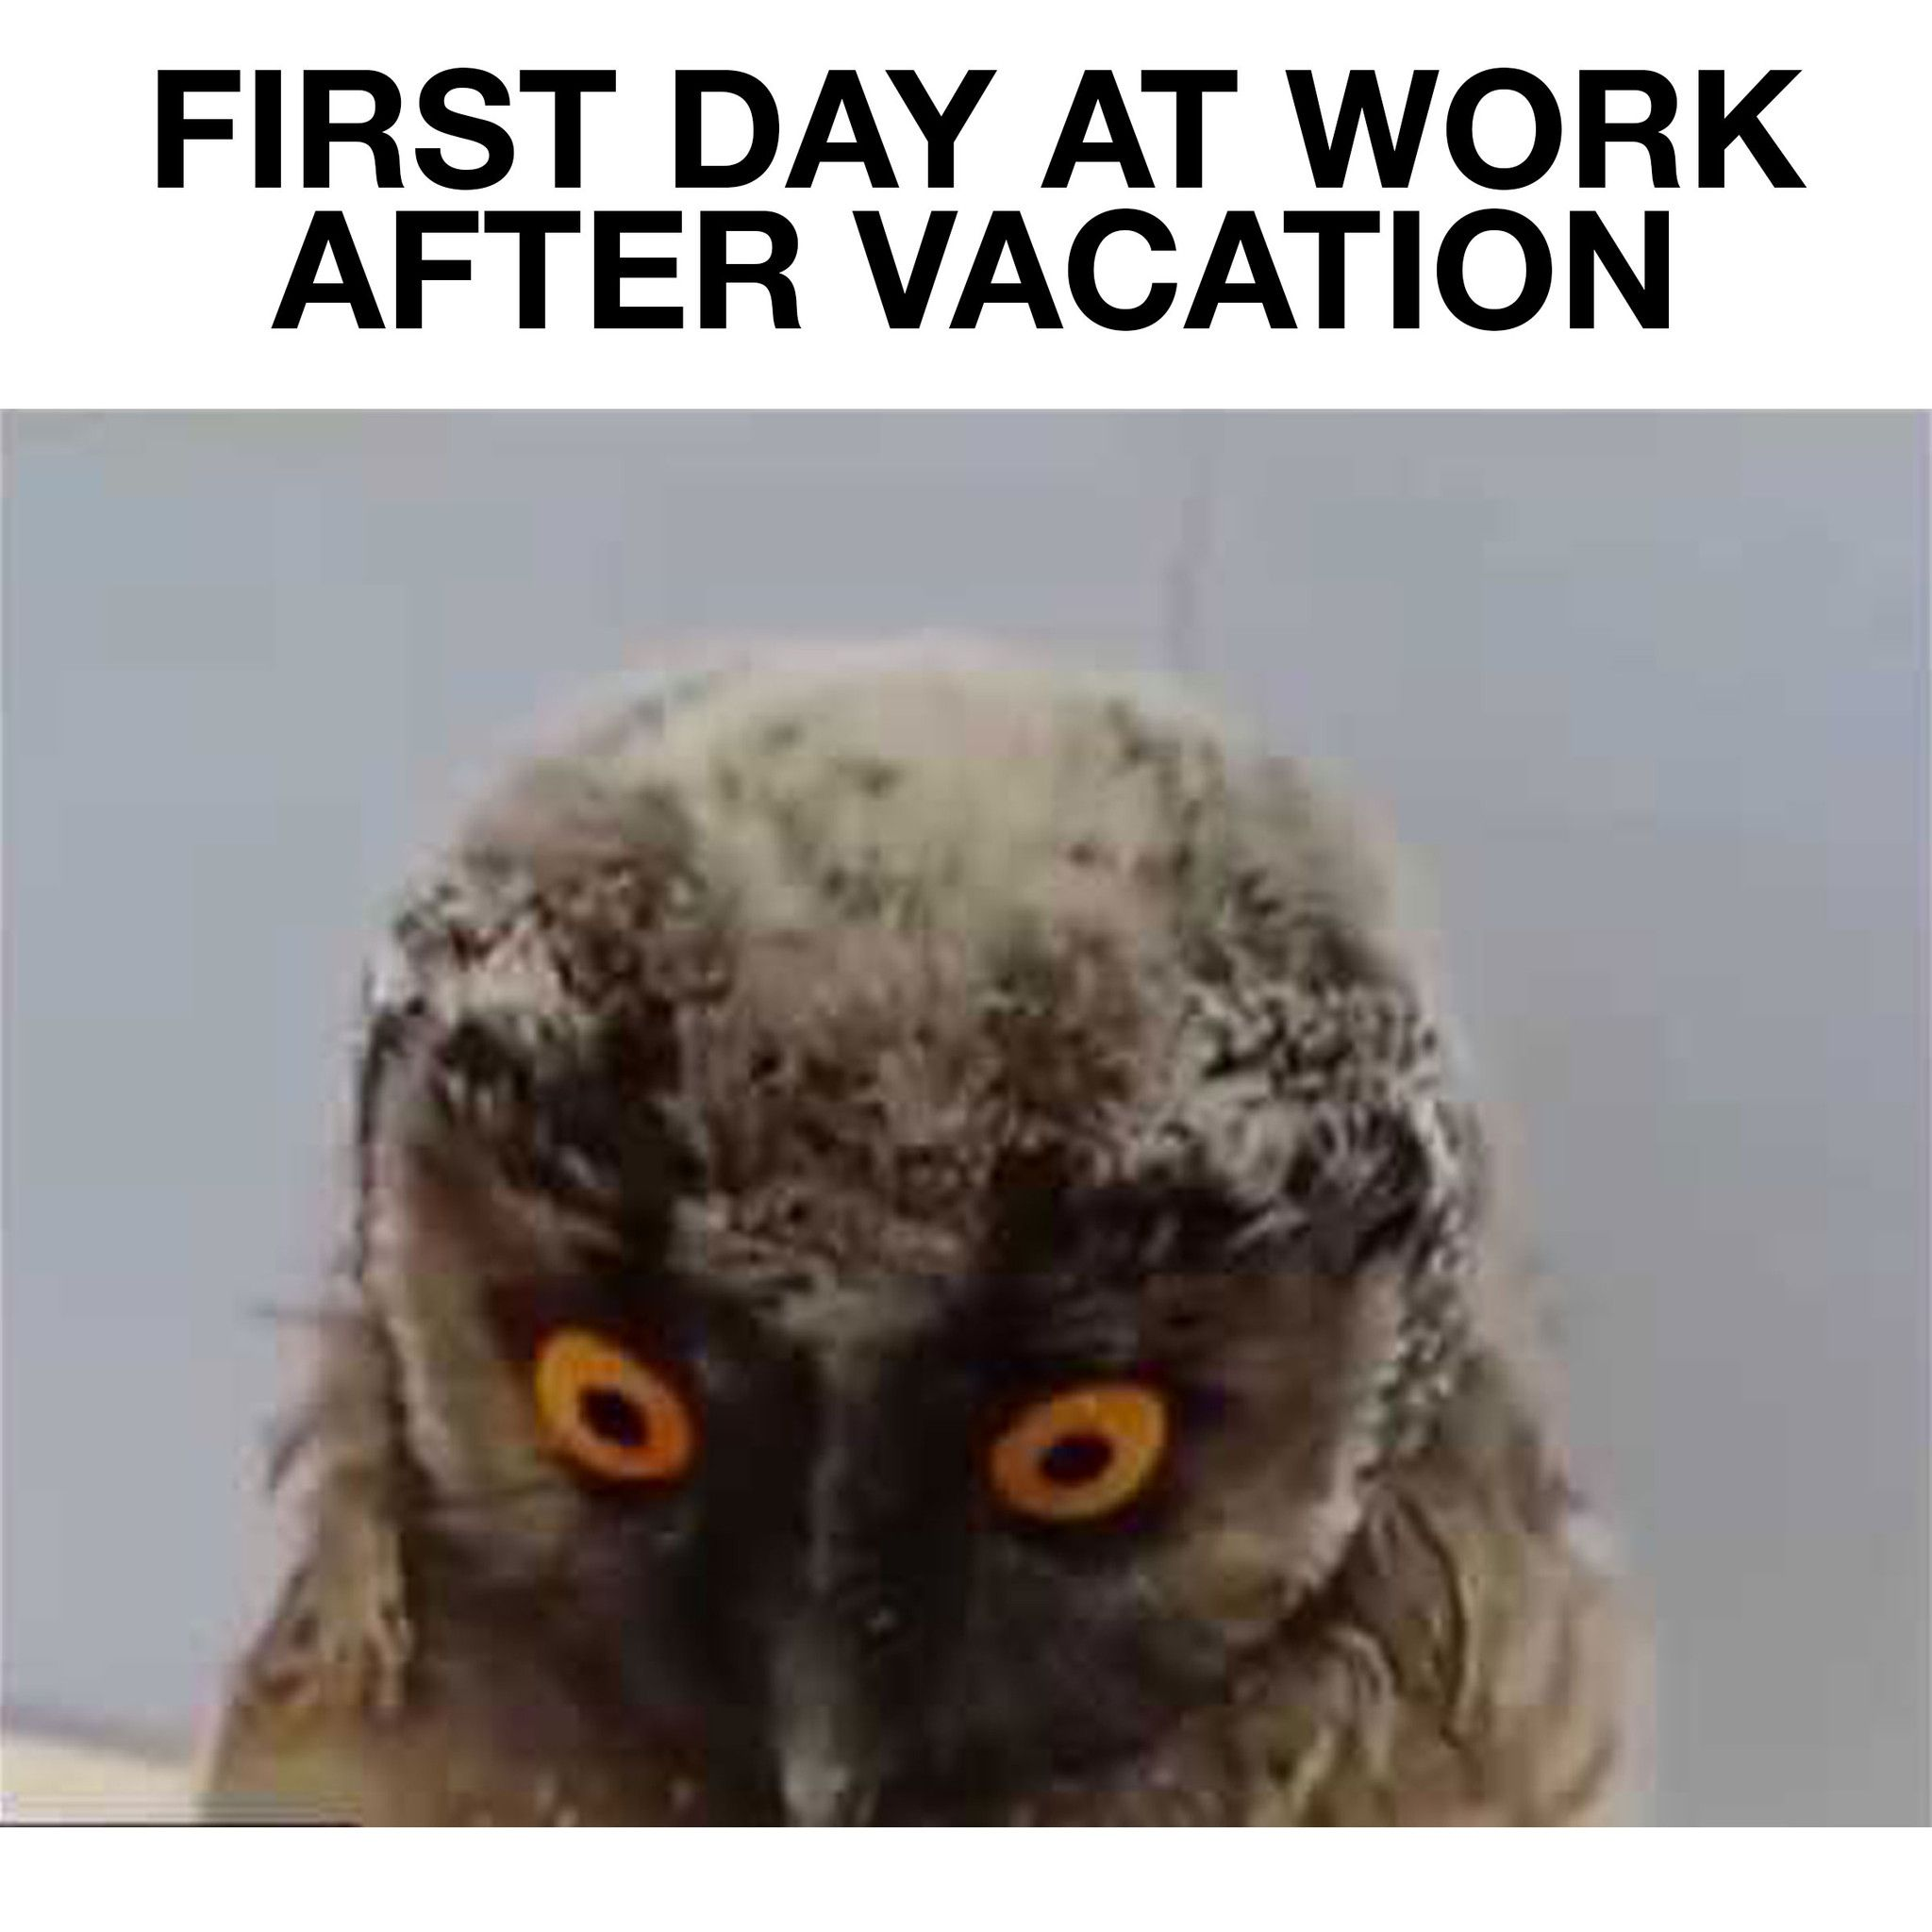 First Day At Work After Vacation Funny Owl Movie Work